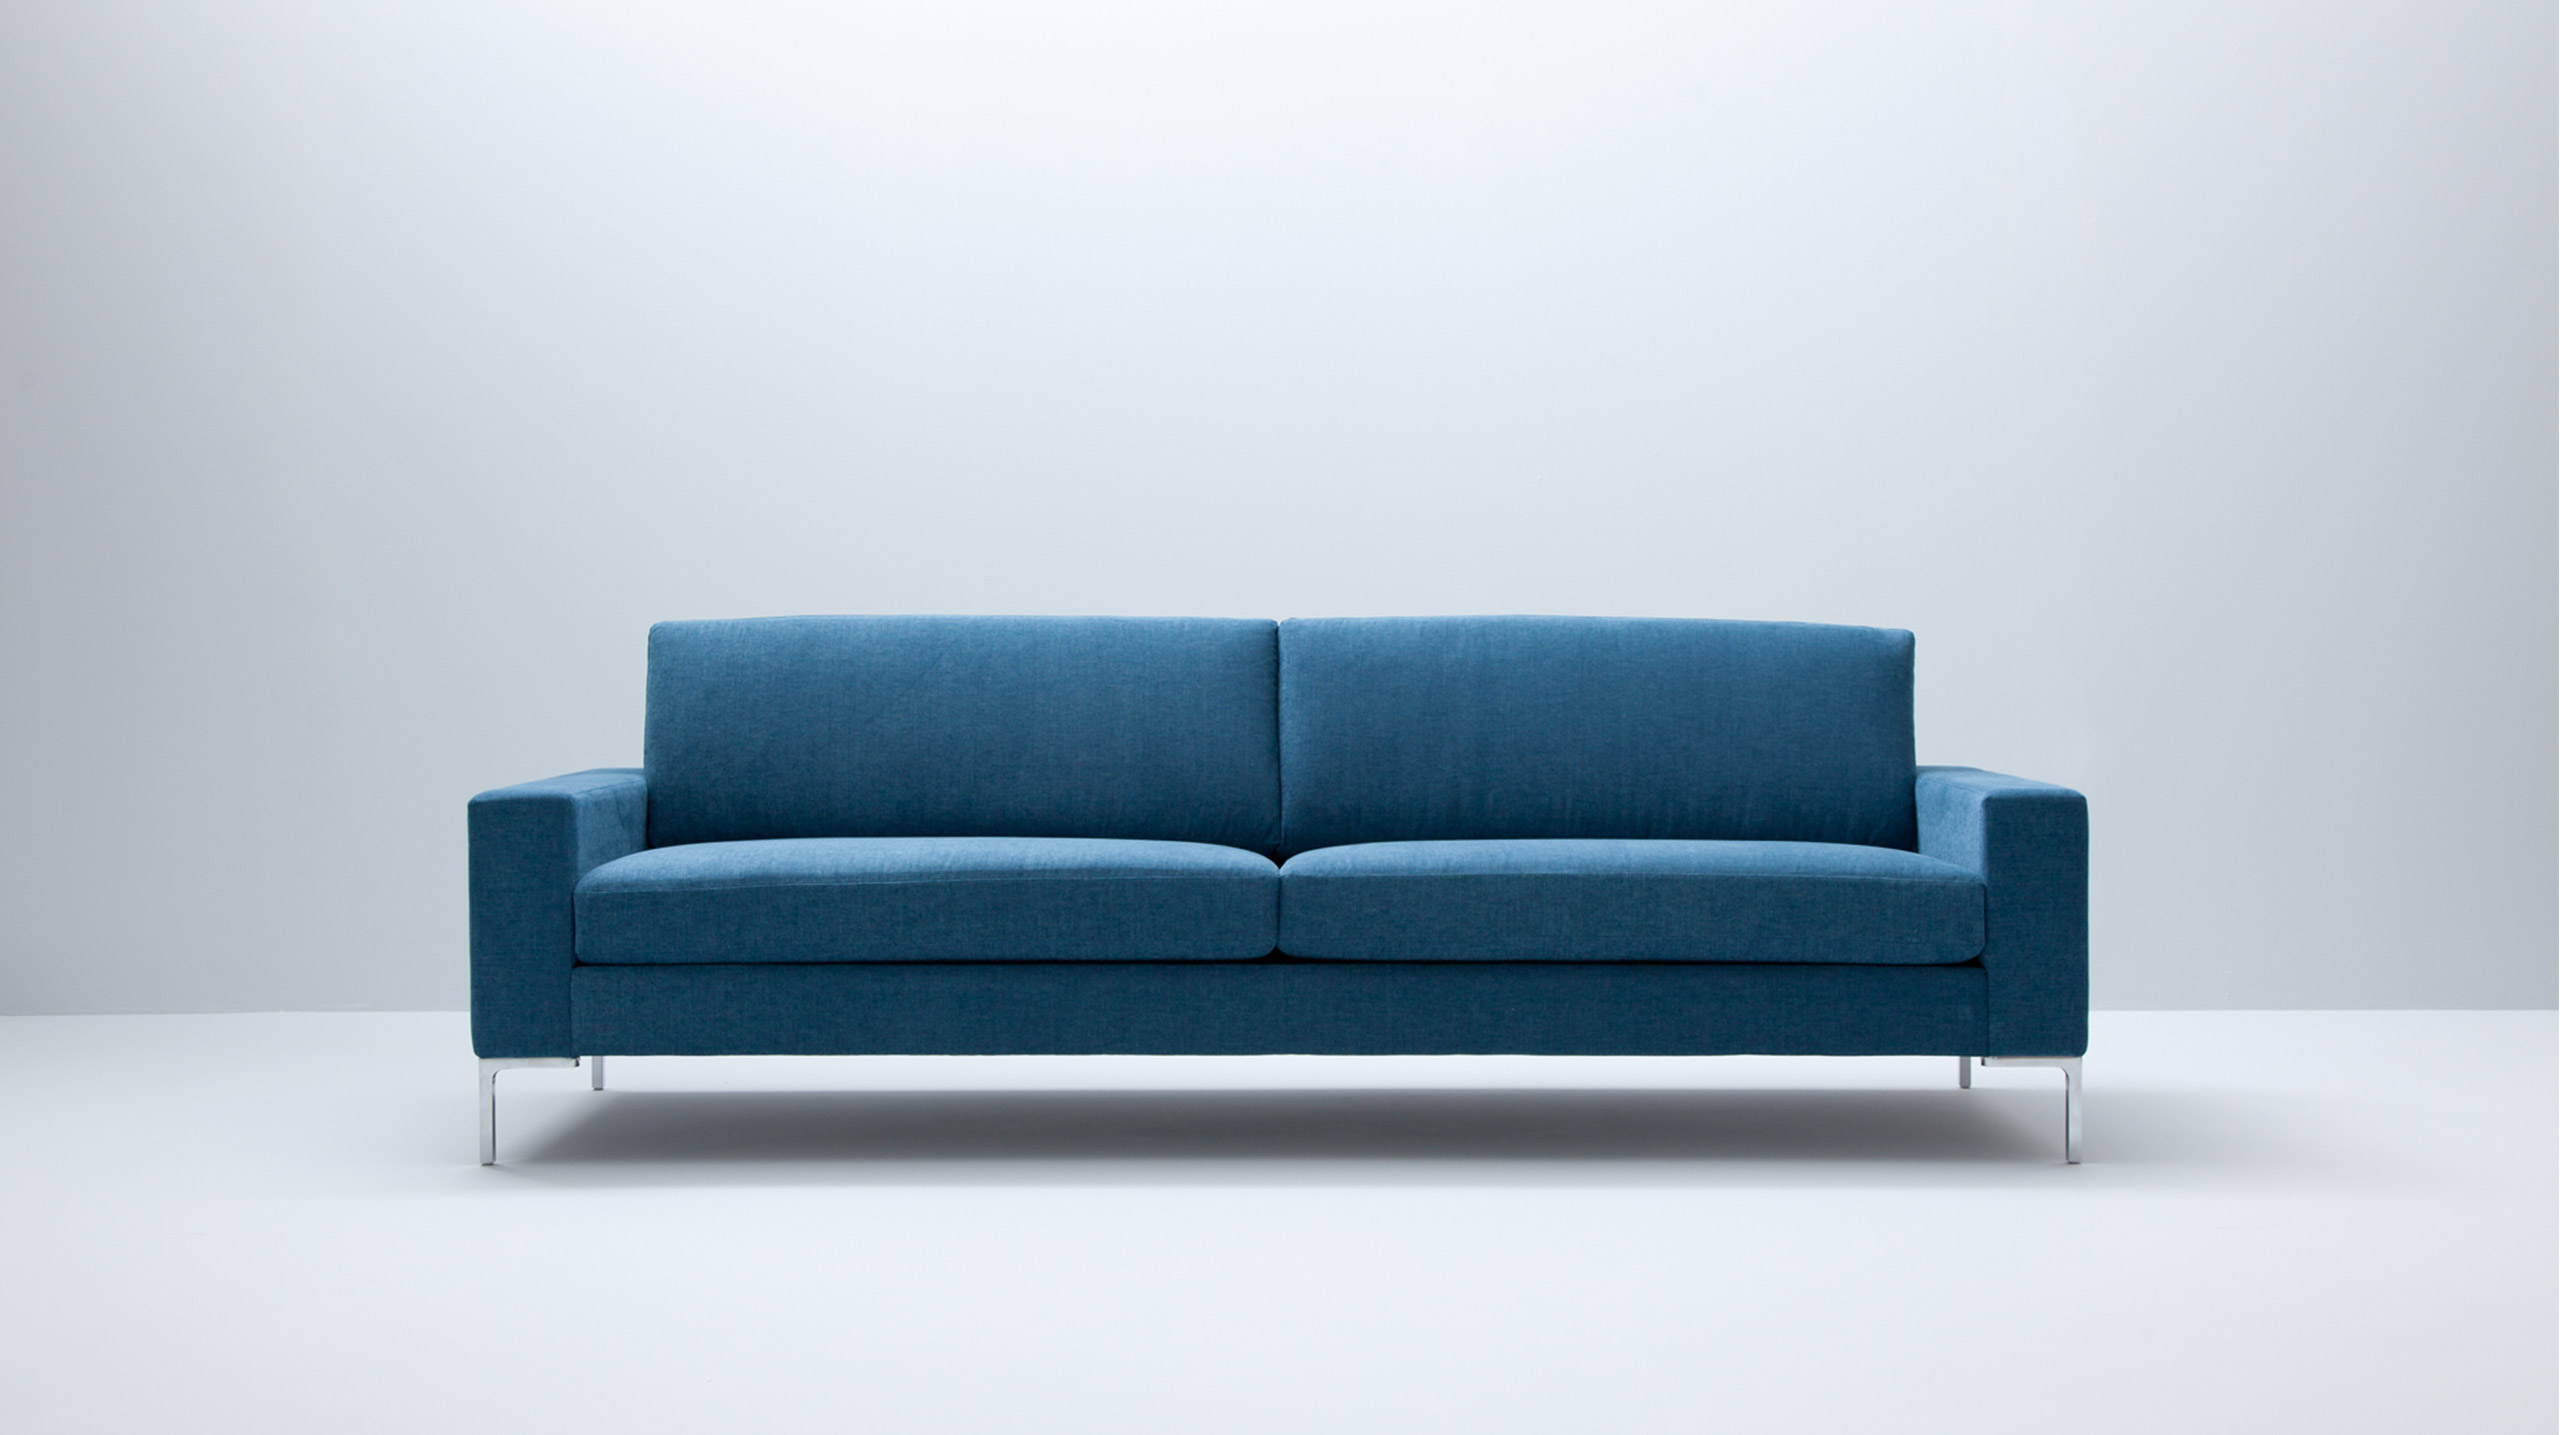 Billig sofa billig sofa billig sofa billig sofa billig for Couch quietscht